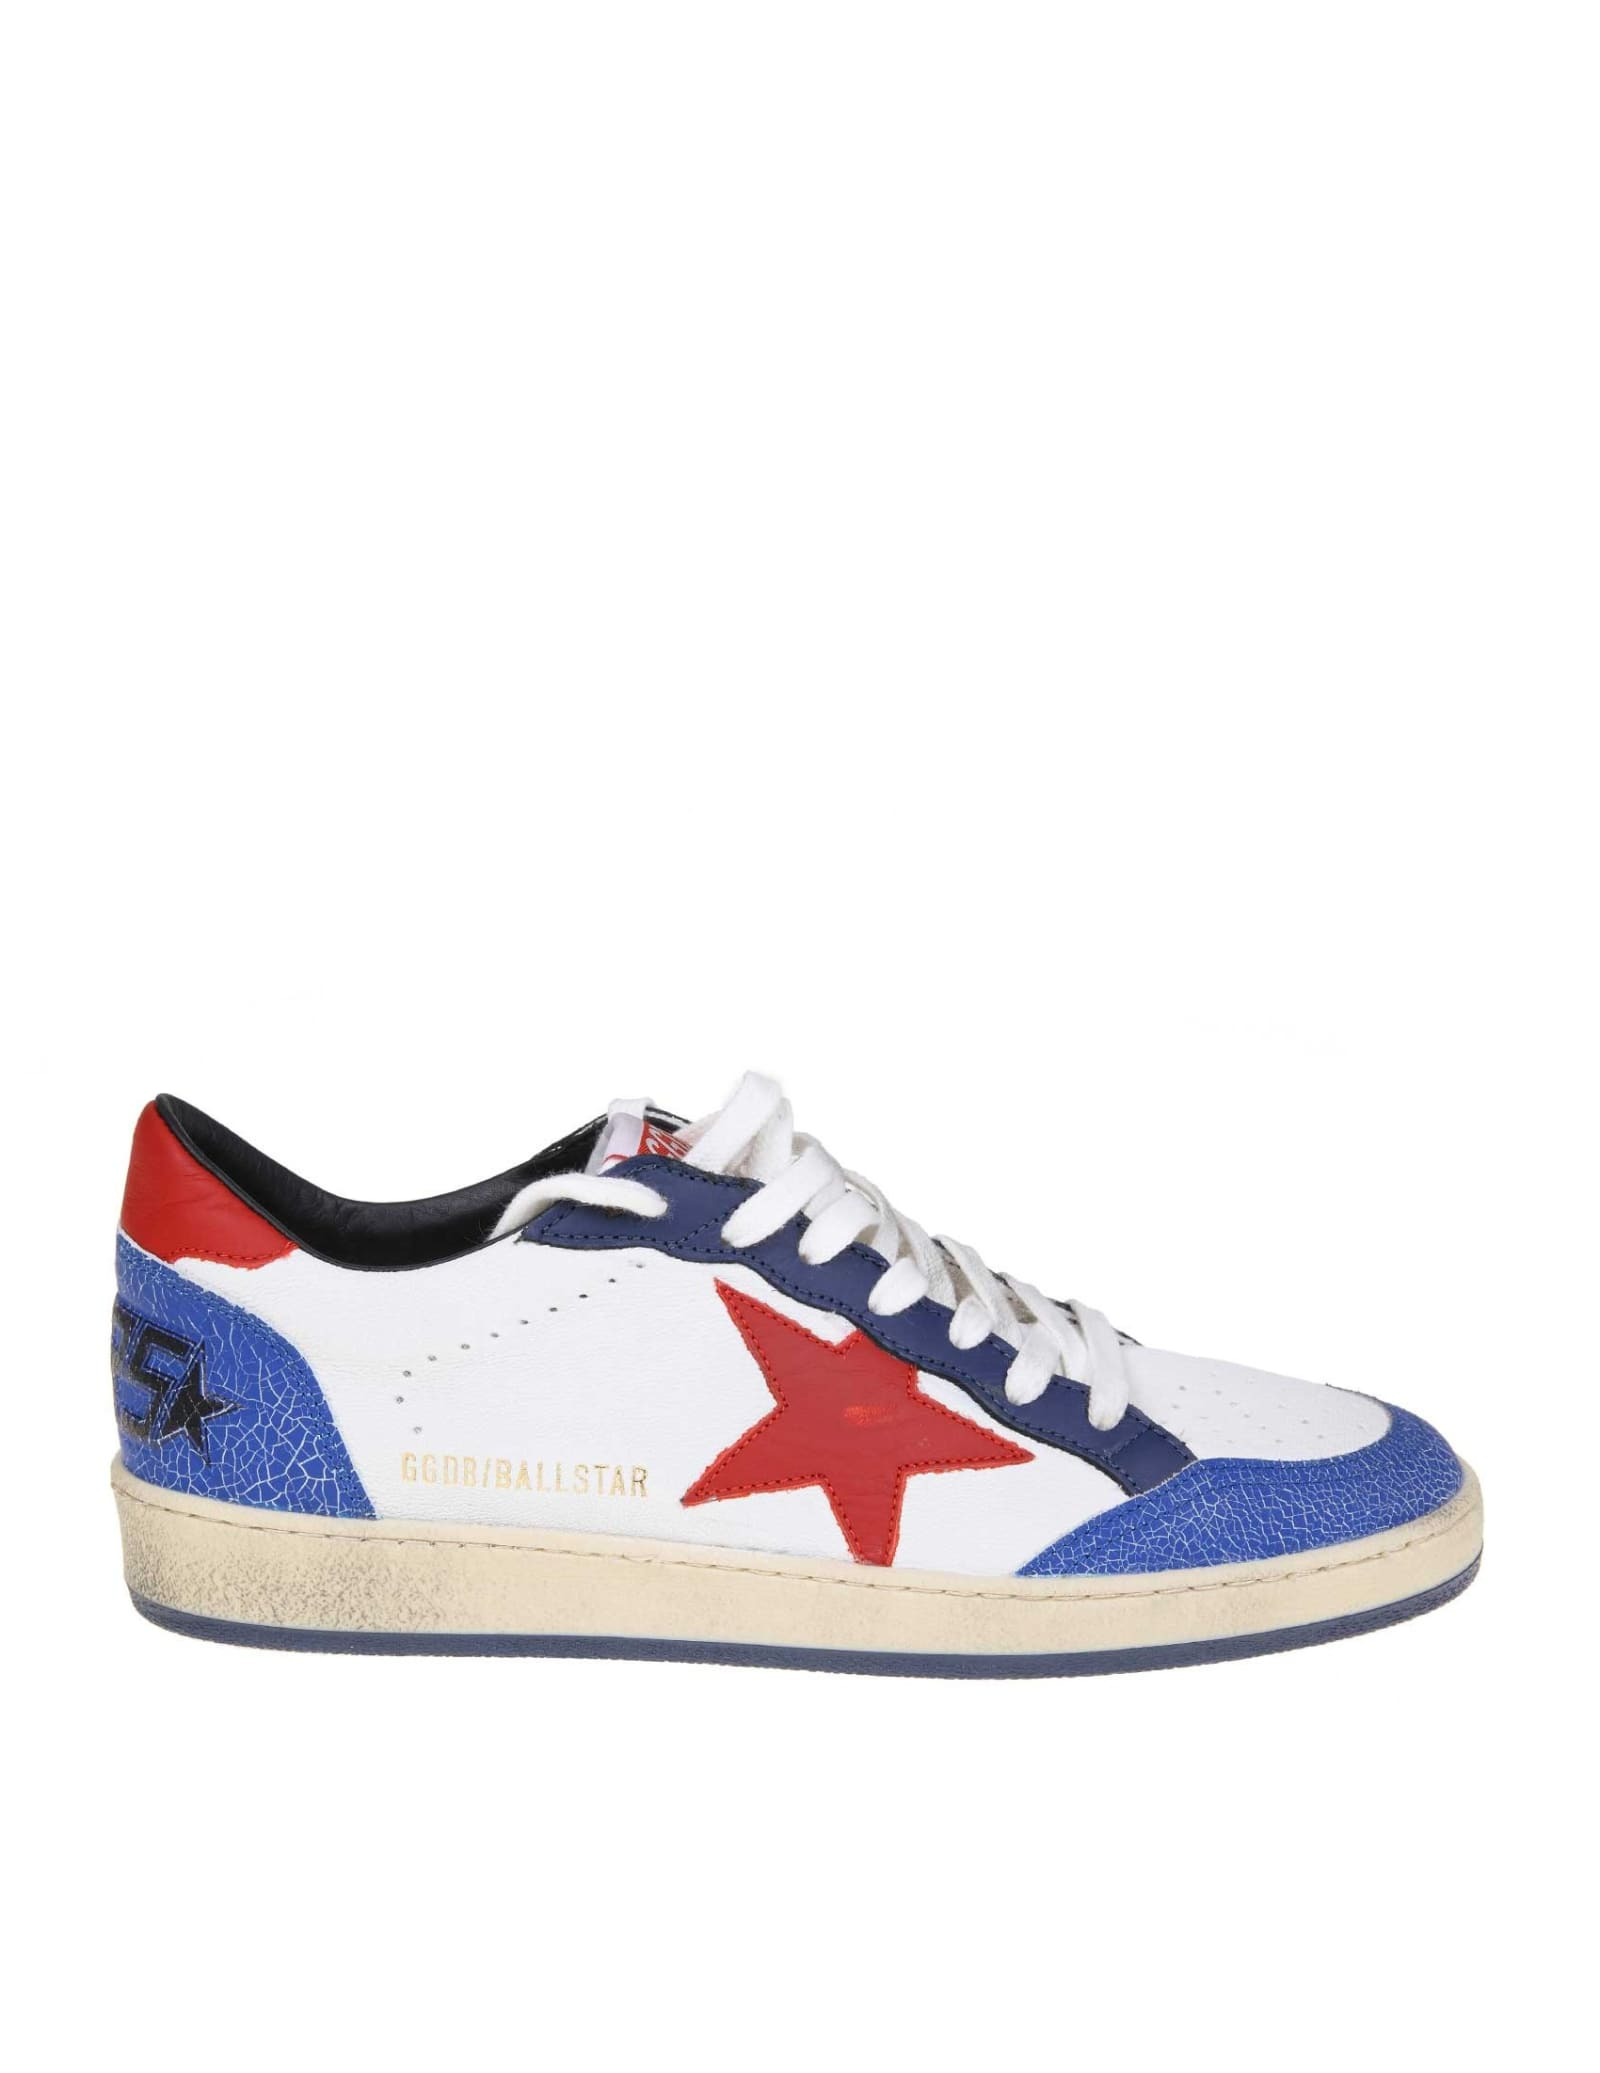 Golden Goose Sneakers Ball Star In White Red Blue Leather